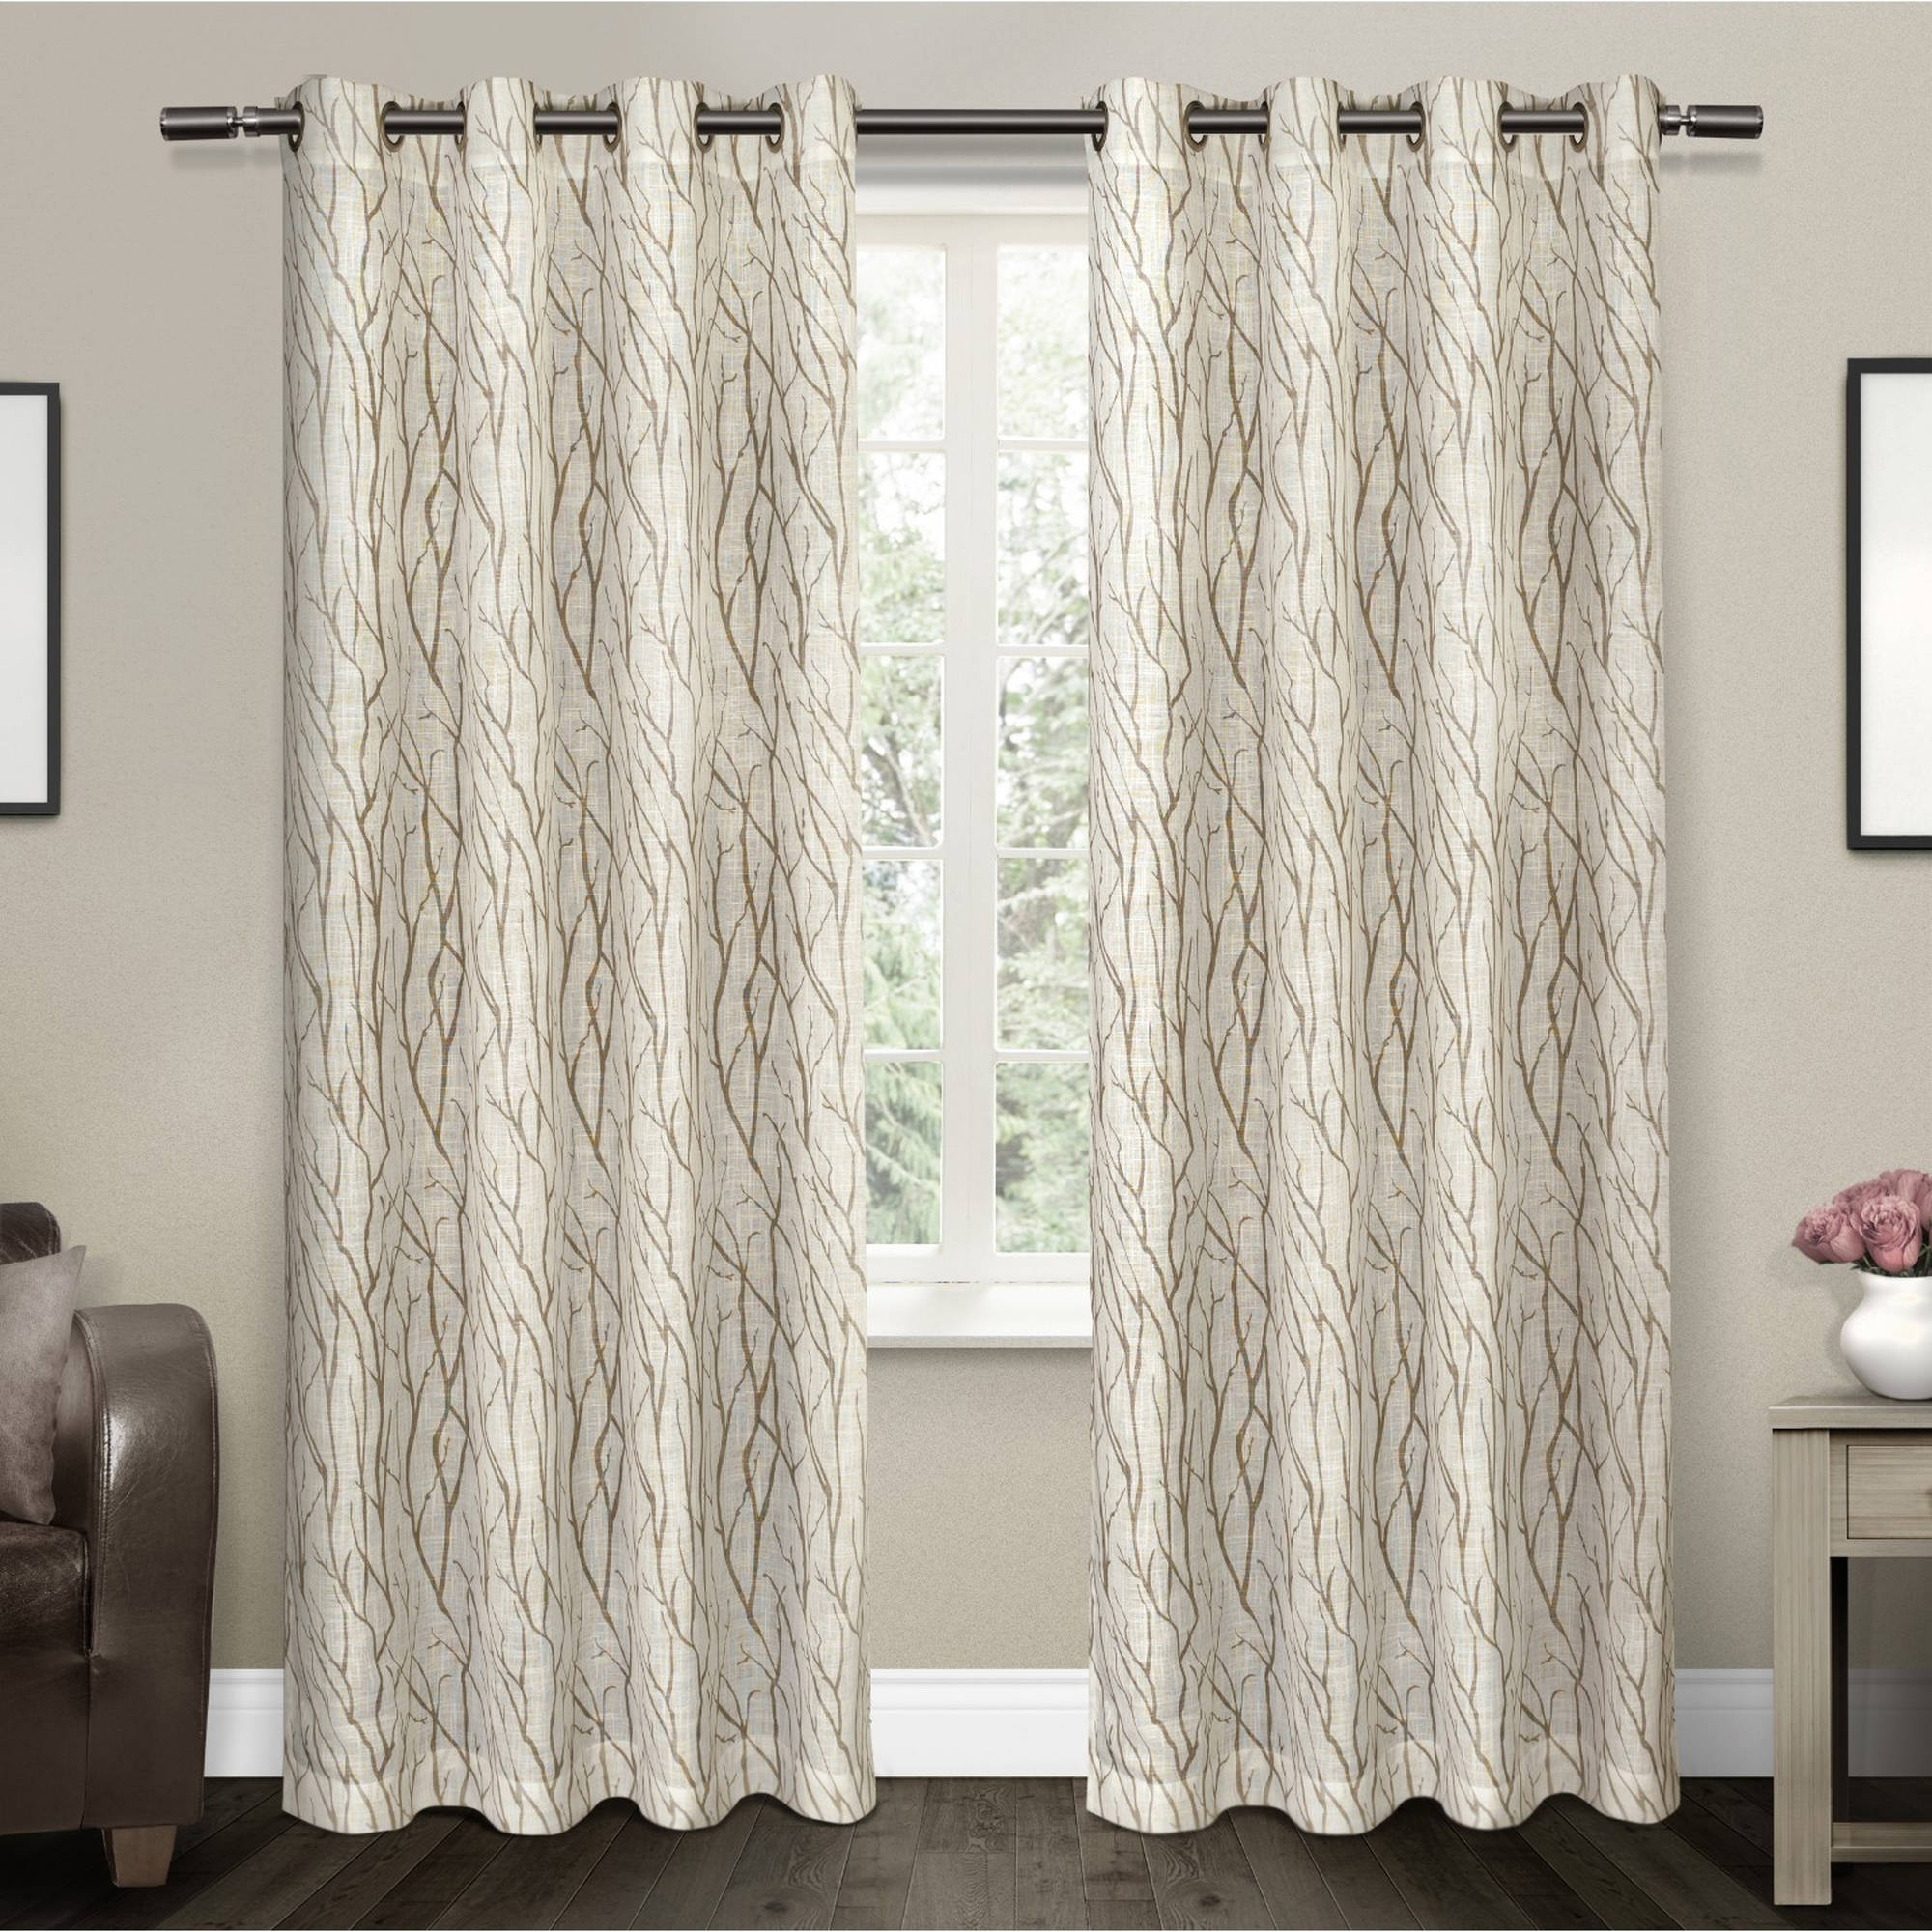 Cheap Curtains Online Inexpensive Curtains For Large Windows Curtain Ideas